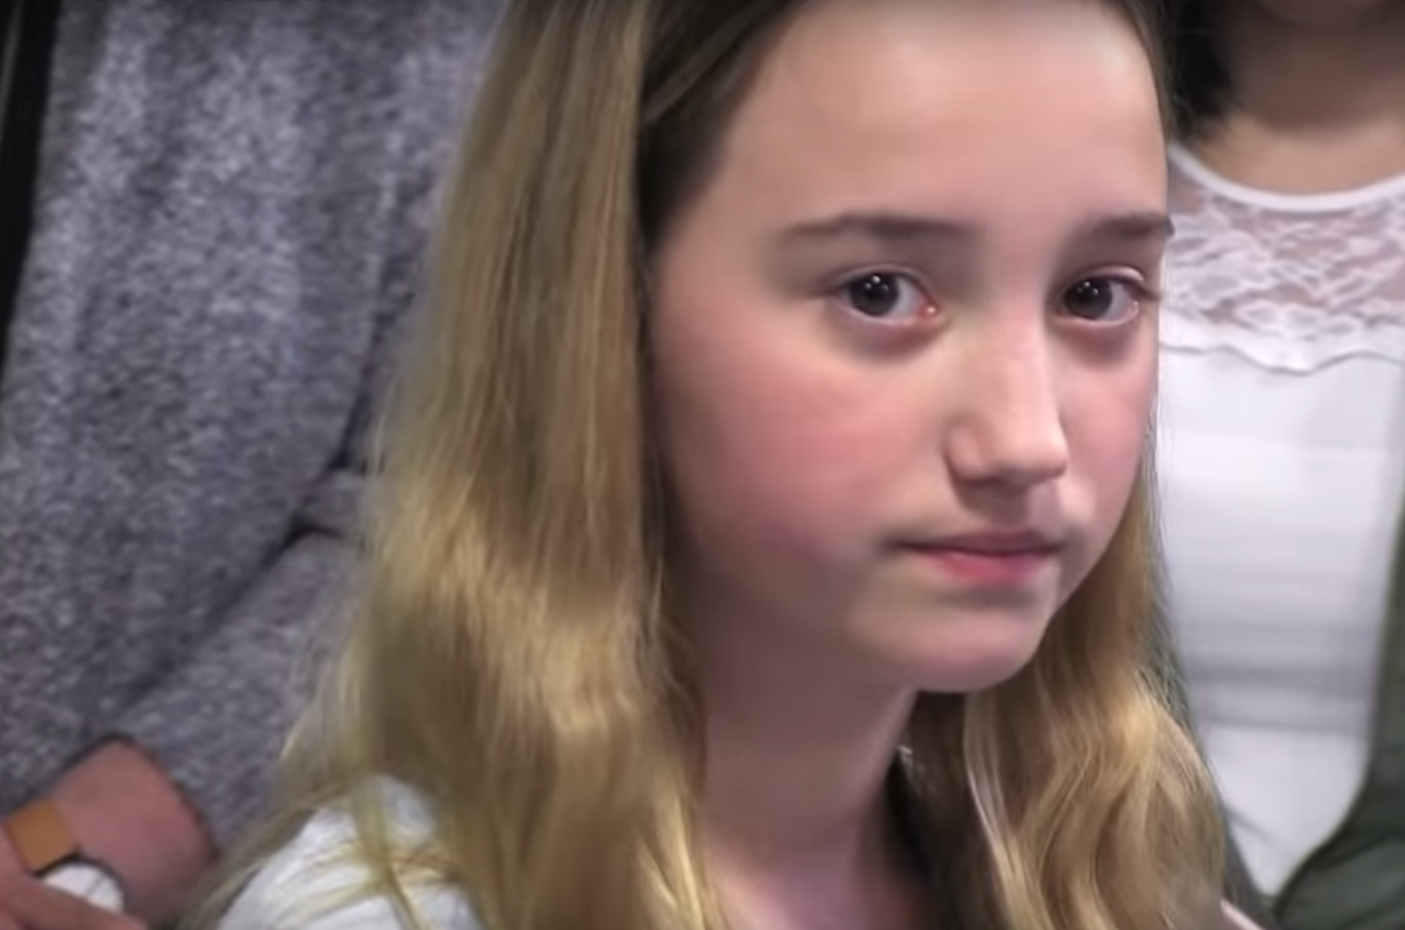 Article image for Viral anti-gun campaign: Eleven year old girl teaches active shooter training